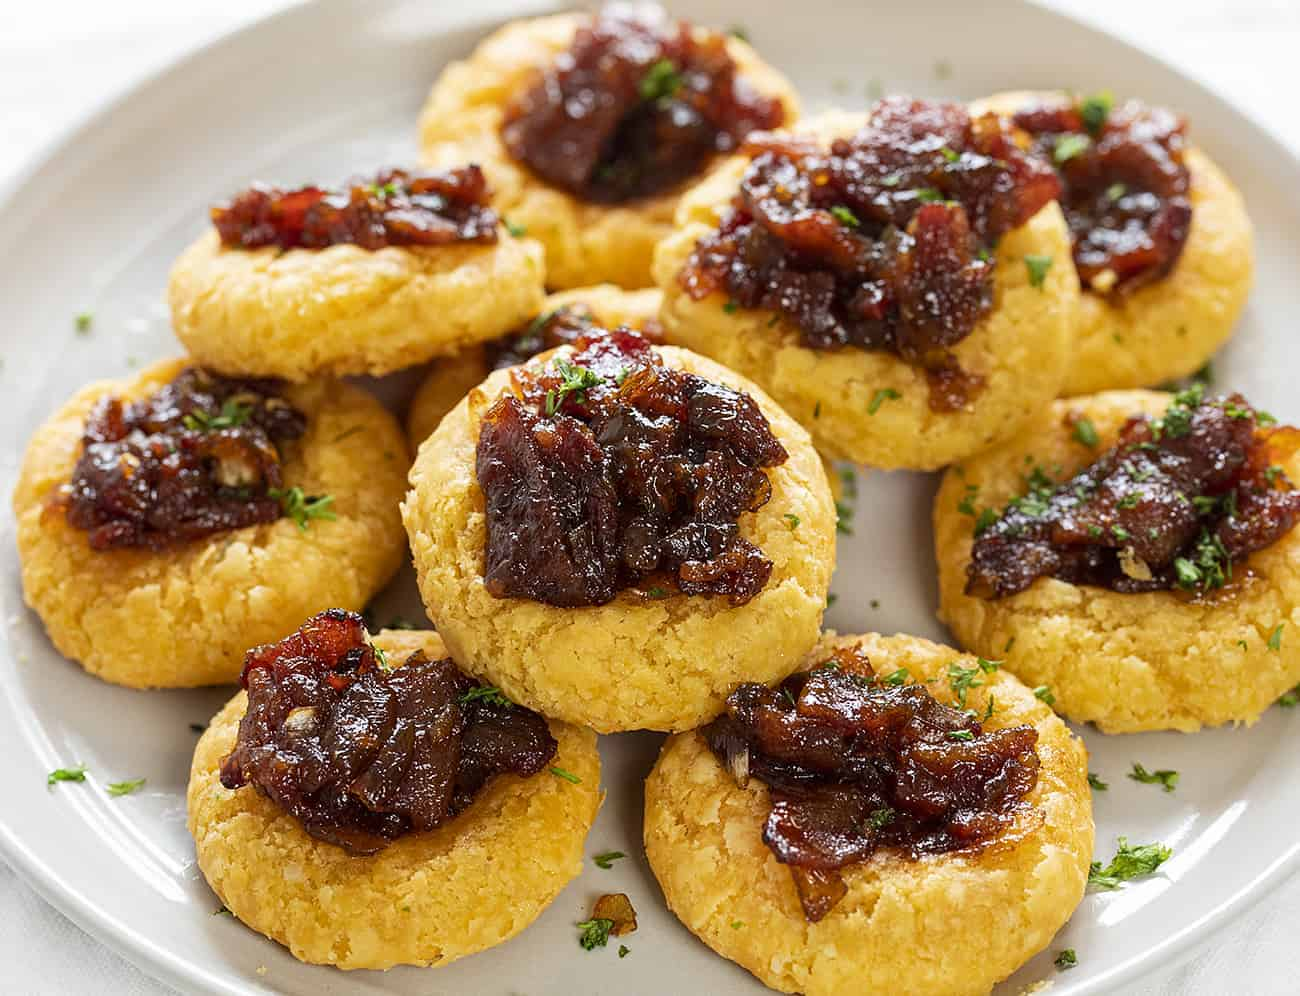 Cheesy Thumbprint Appetizers on a Plate